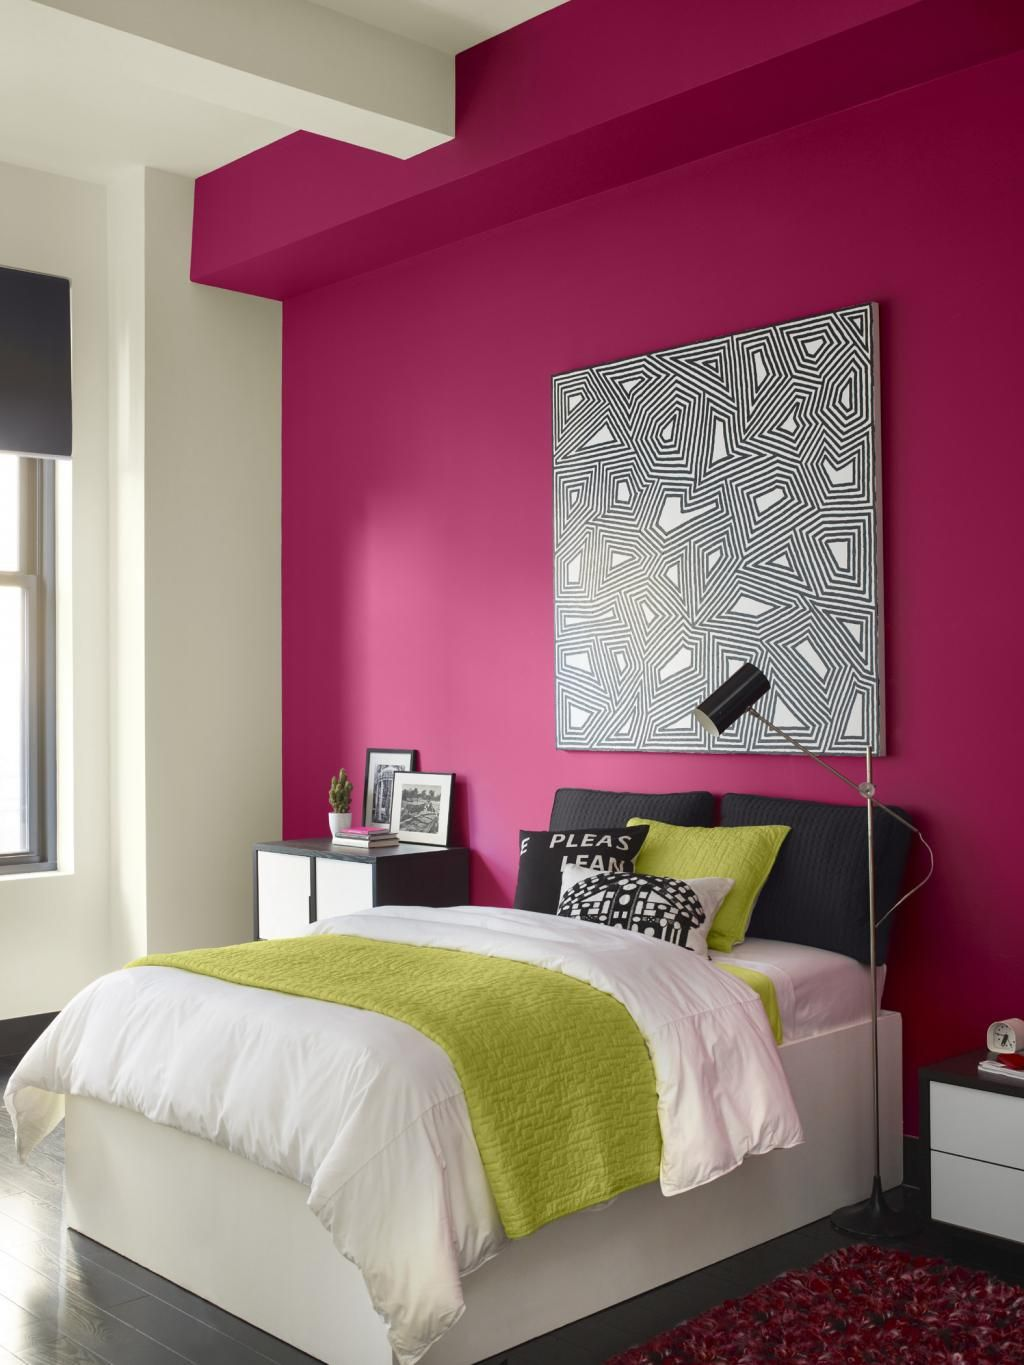 Interior Design Bedroom Color Combination With Bright Pink White Tapja Sunset Coloured How To Break The Colour Rules